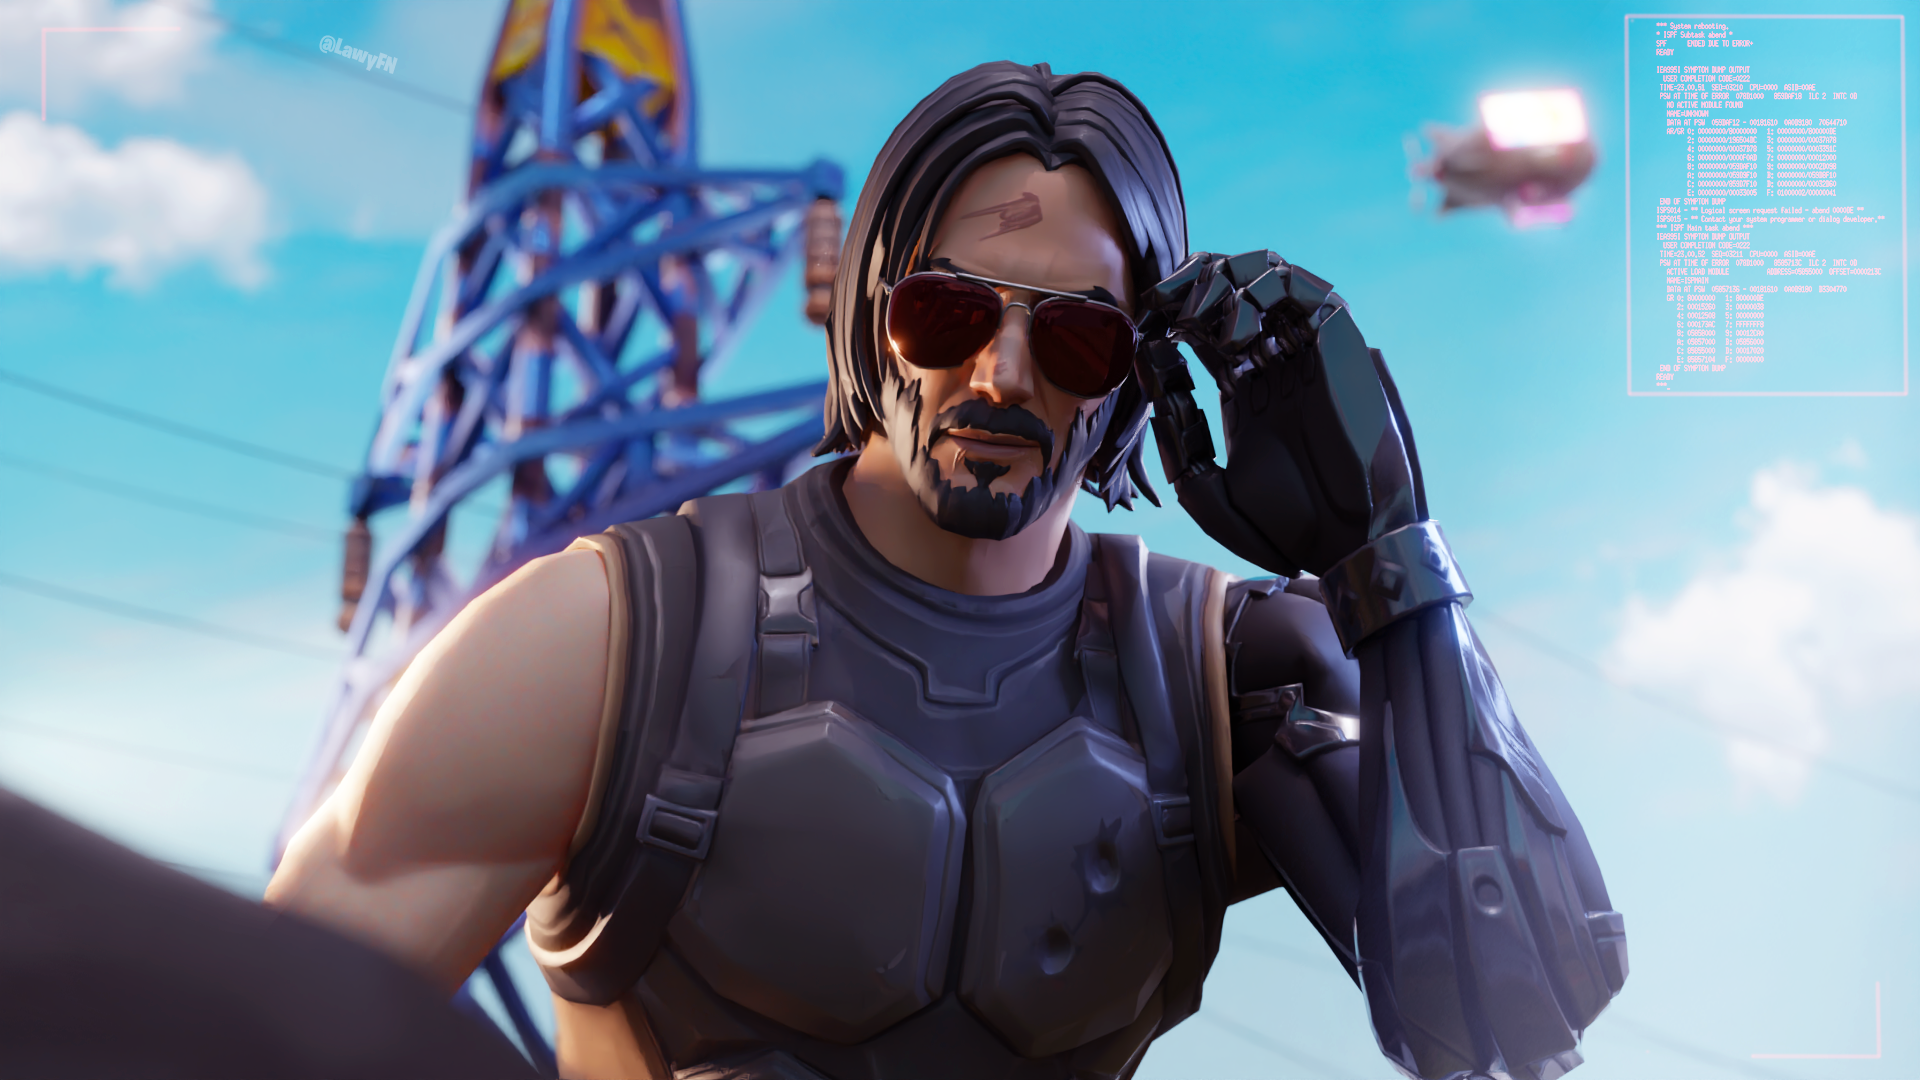 Fortnite Season 10 Wallpapers Top Free Fortnite Season 10